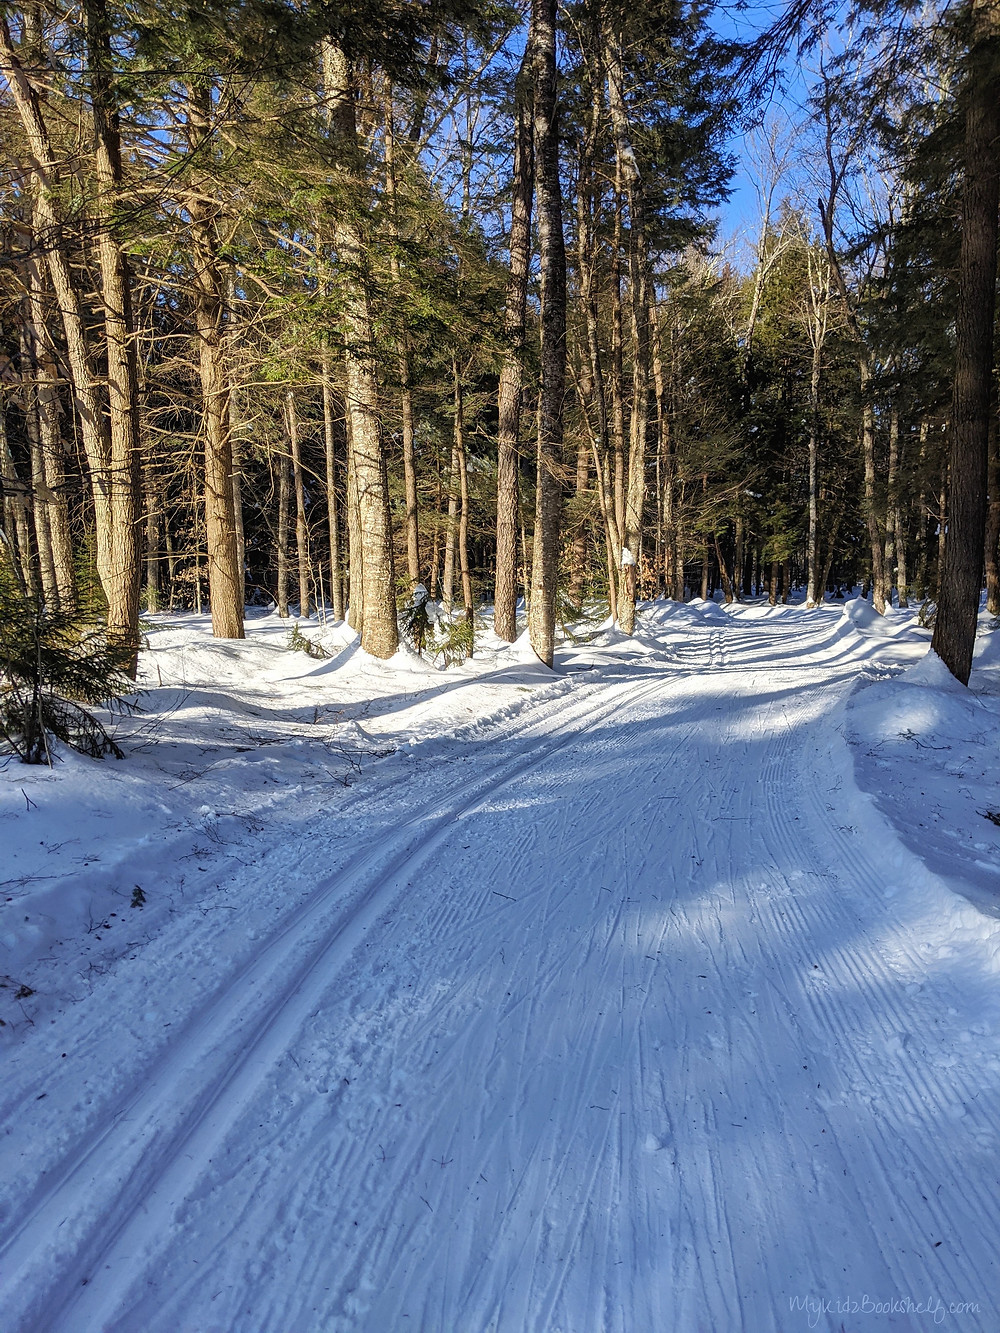 snowy cross country ski trail groomed for skis with pine trees on both sides